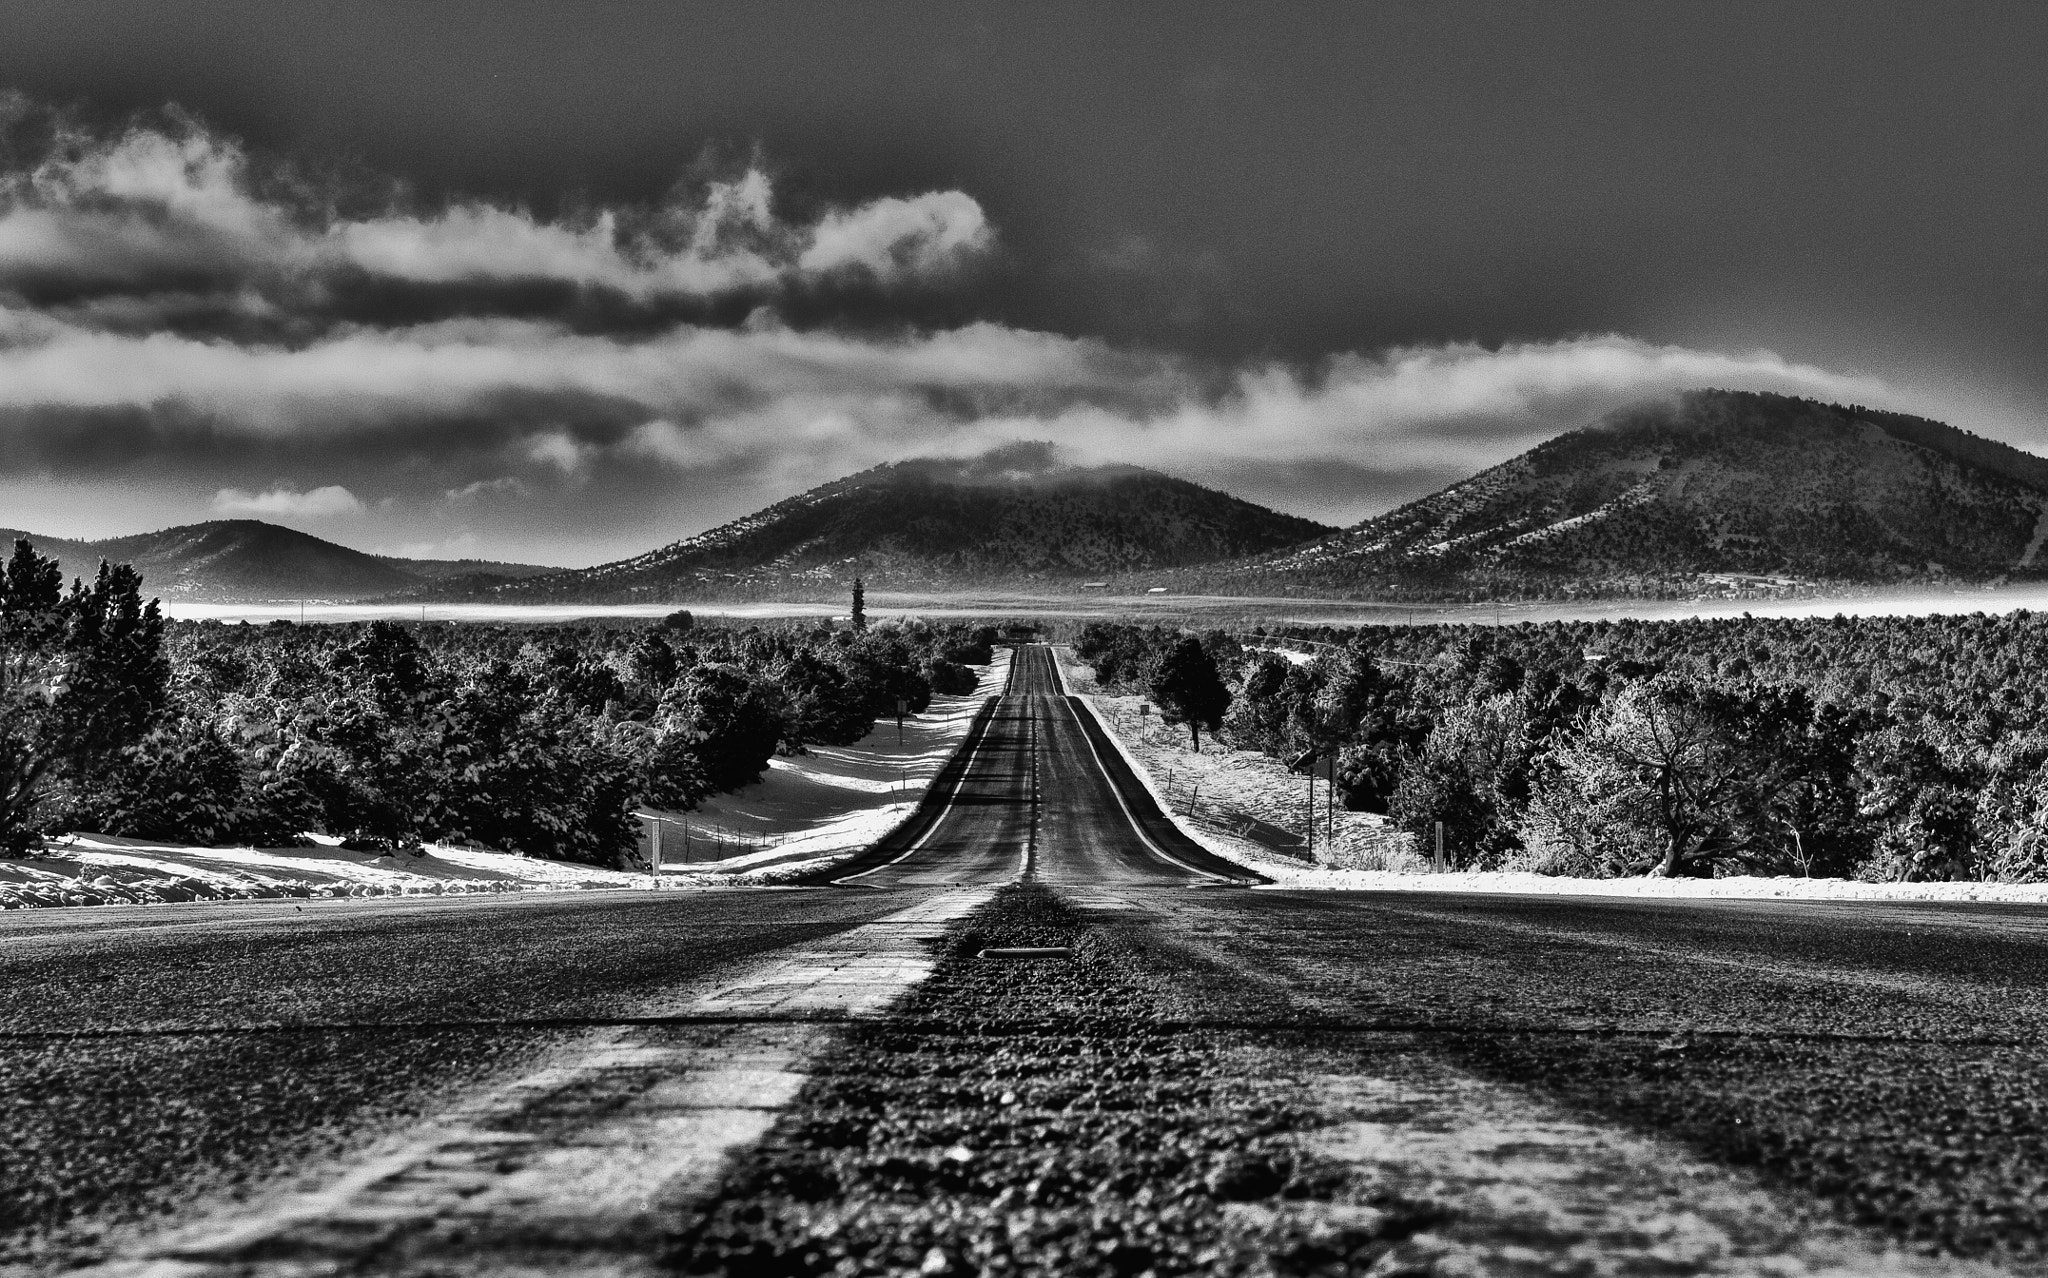 Photograph No Turning Back by Danilo Faria on 500px